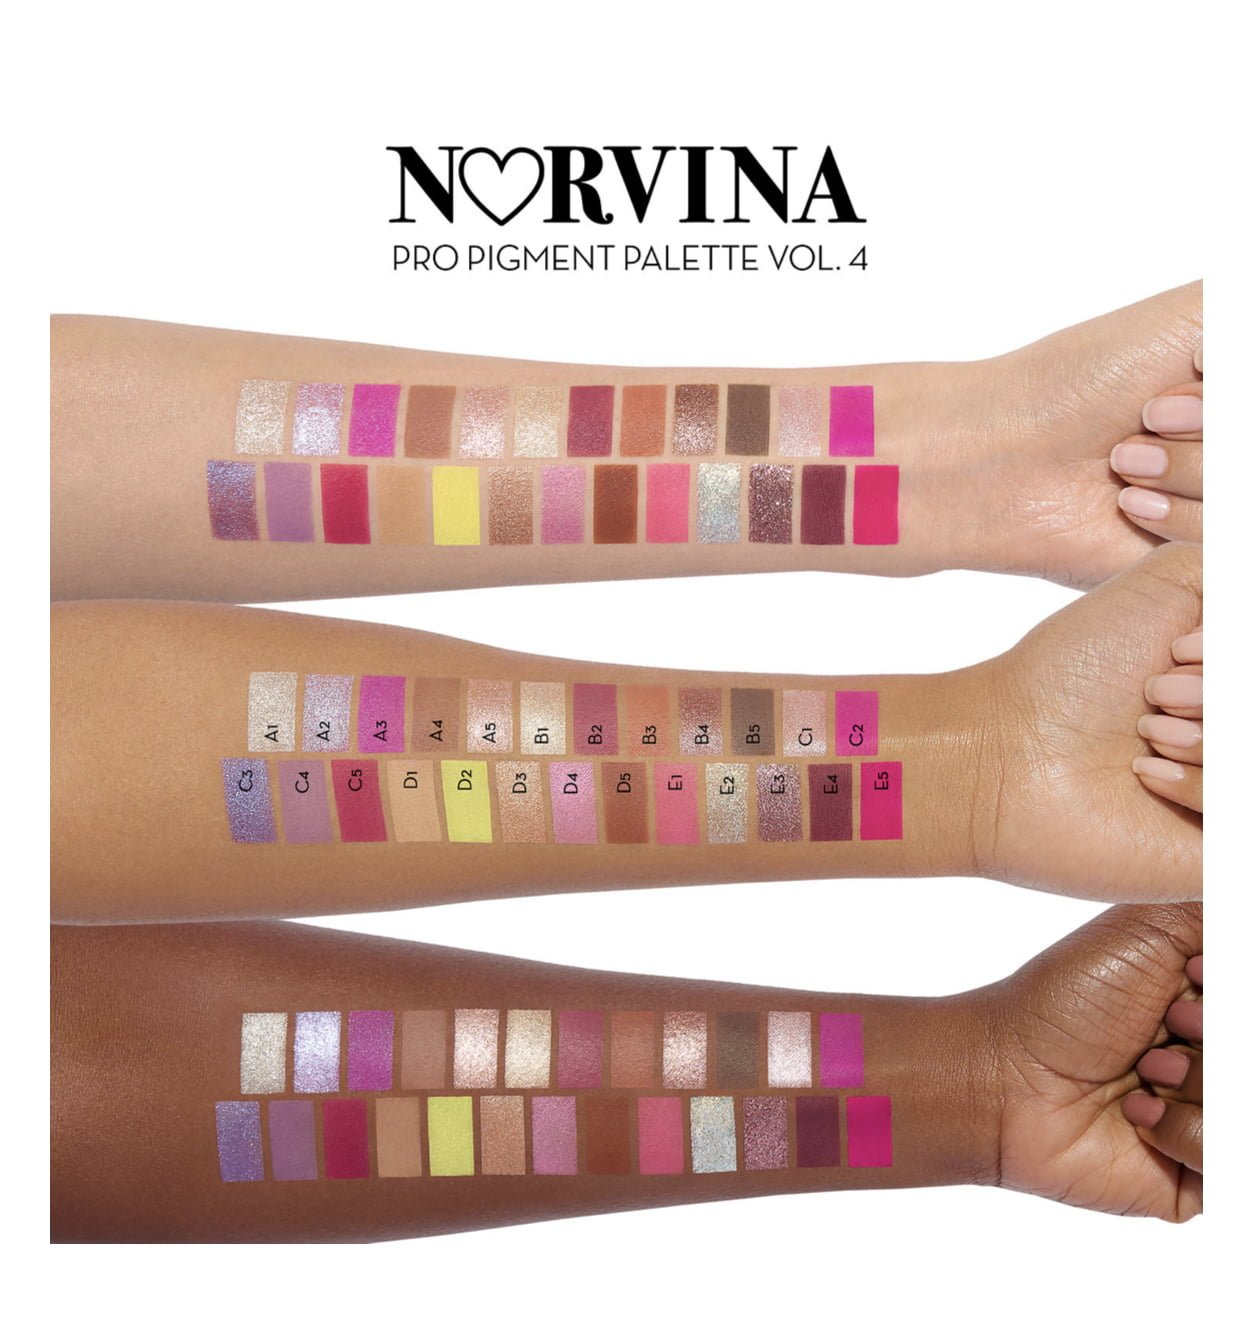 Anastasia Beverly Hills Norvina Pro Pigment Vol 4 Palette Reveal & Swatches!